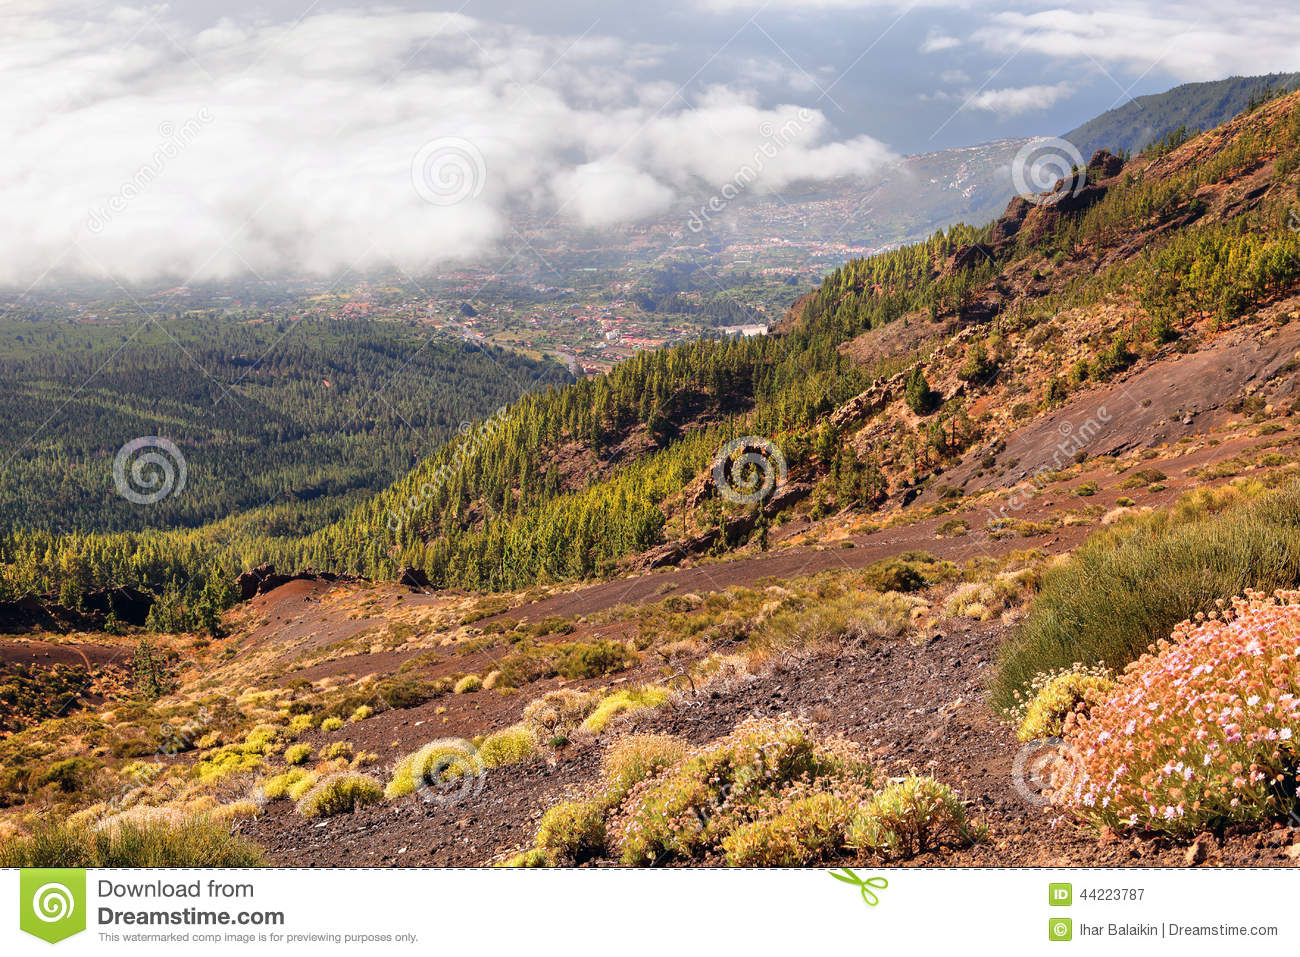 Stock Photo Scenic Landscape Mountain Valley Blue Sky White Clouds Colorful Houses Tenerife Canary Islands Spain Image44223787 likewise Royalty Free Stock Image Green Energy City Concept Image28446406 together with 128 moreover Royalty Free Stock Photos Afghanistan Village Image19380898 furthermore Stock Photo Arab Village Old Mud Huts Fujairah Uae Traditional Consisting Houses Roofs Made Bamboo Rocky Courtyard Front Image41206188. on design of houses plan